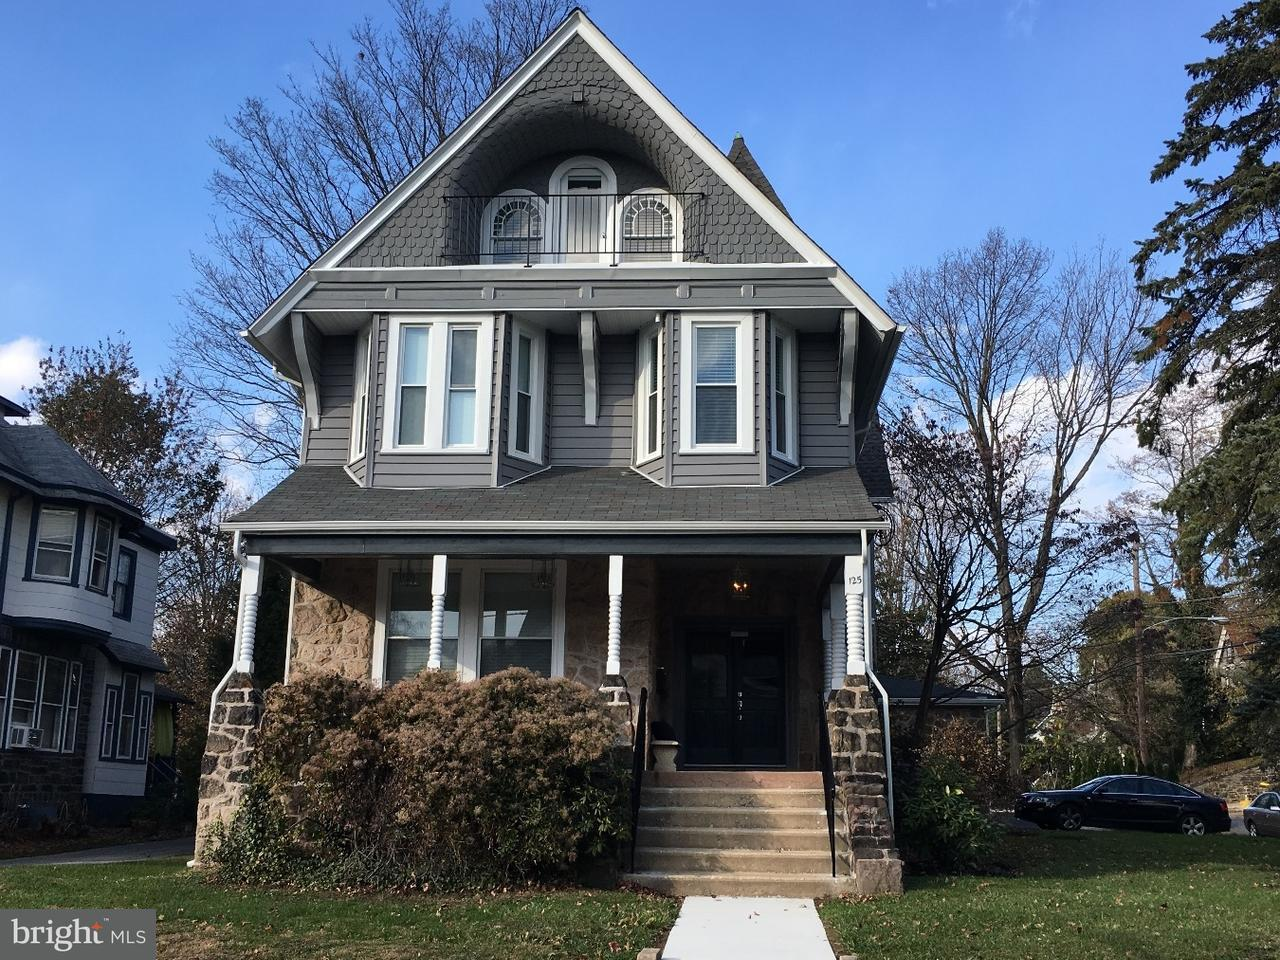 Single Family Home for Rent at 125 WINDSOR AVE #3RD FL Narberth, Pennsylvania 19072 United States